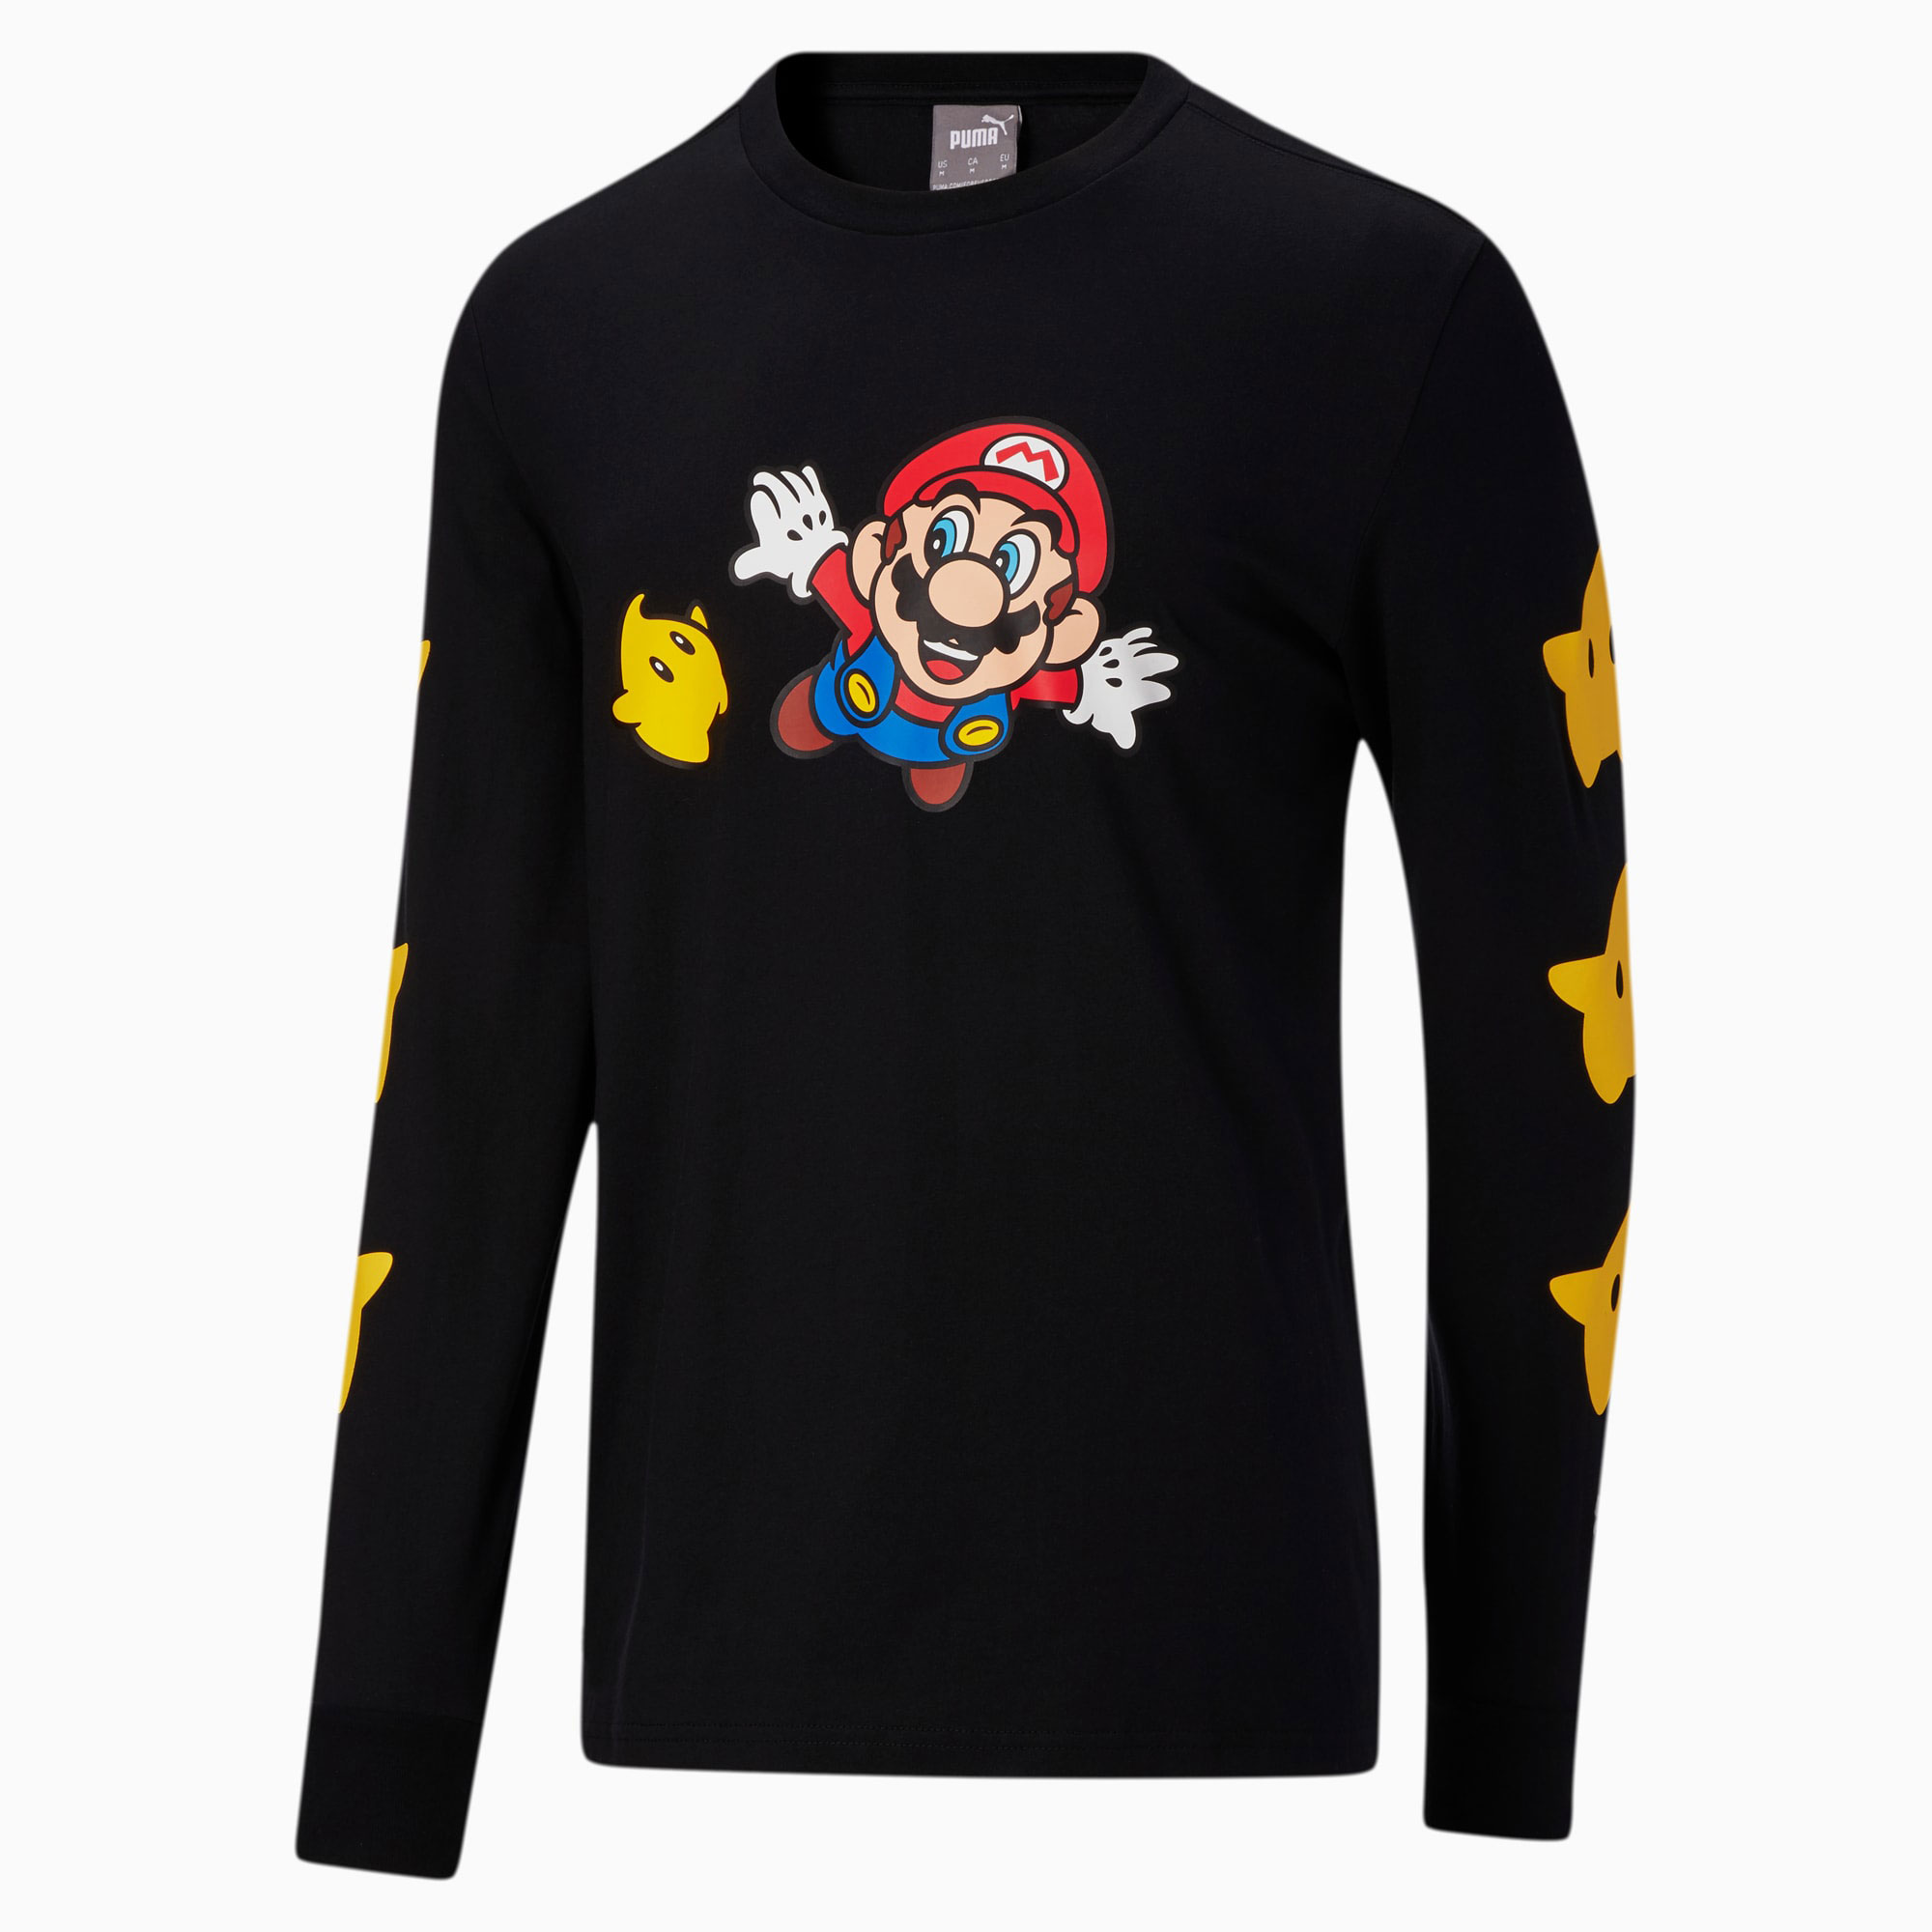 puma-super-mario-galaxy-shirt